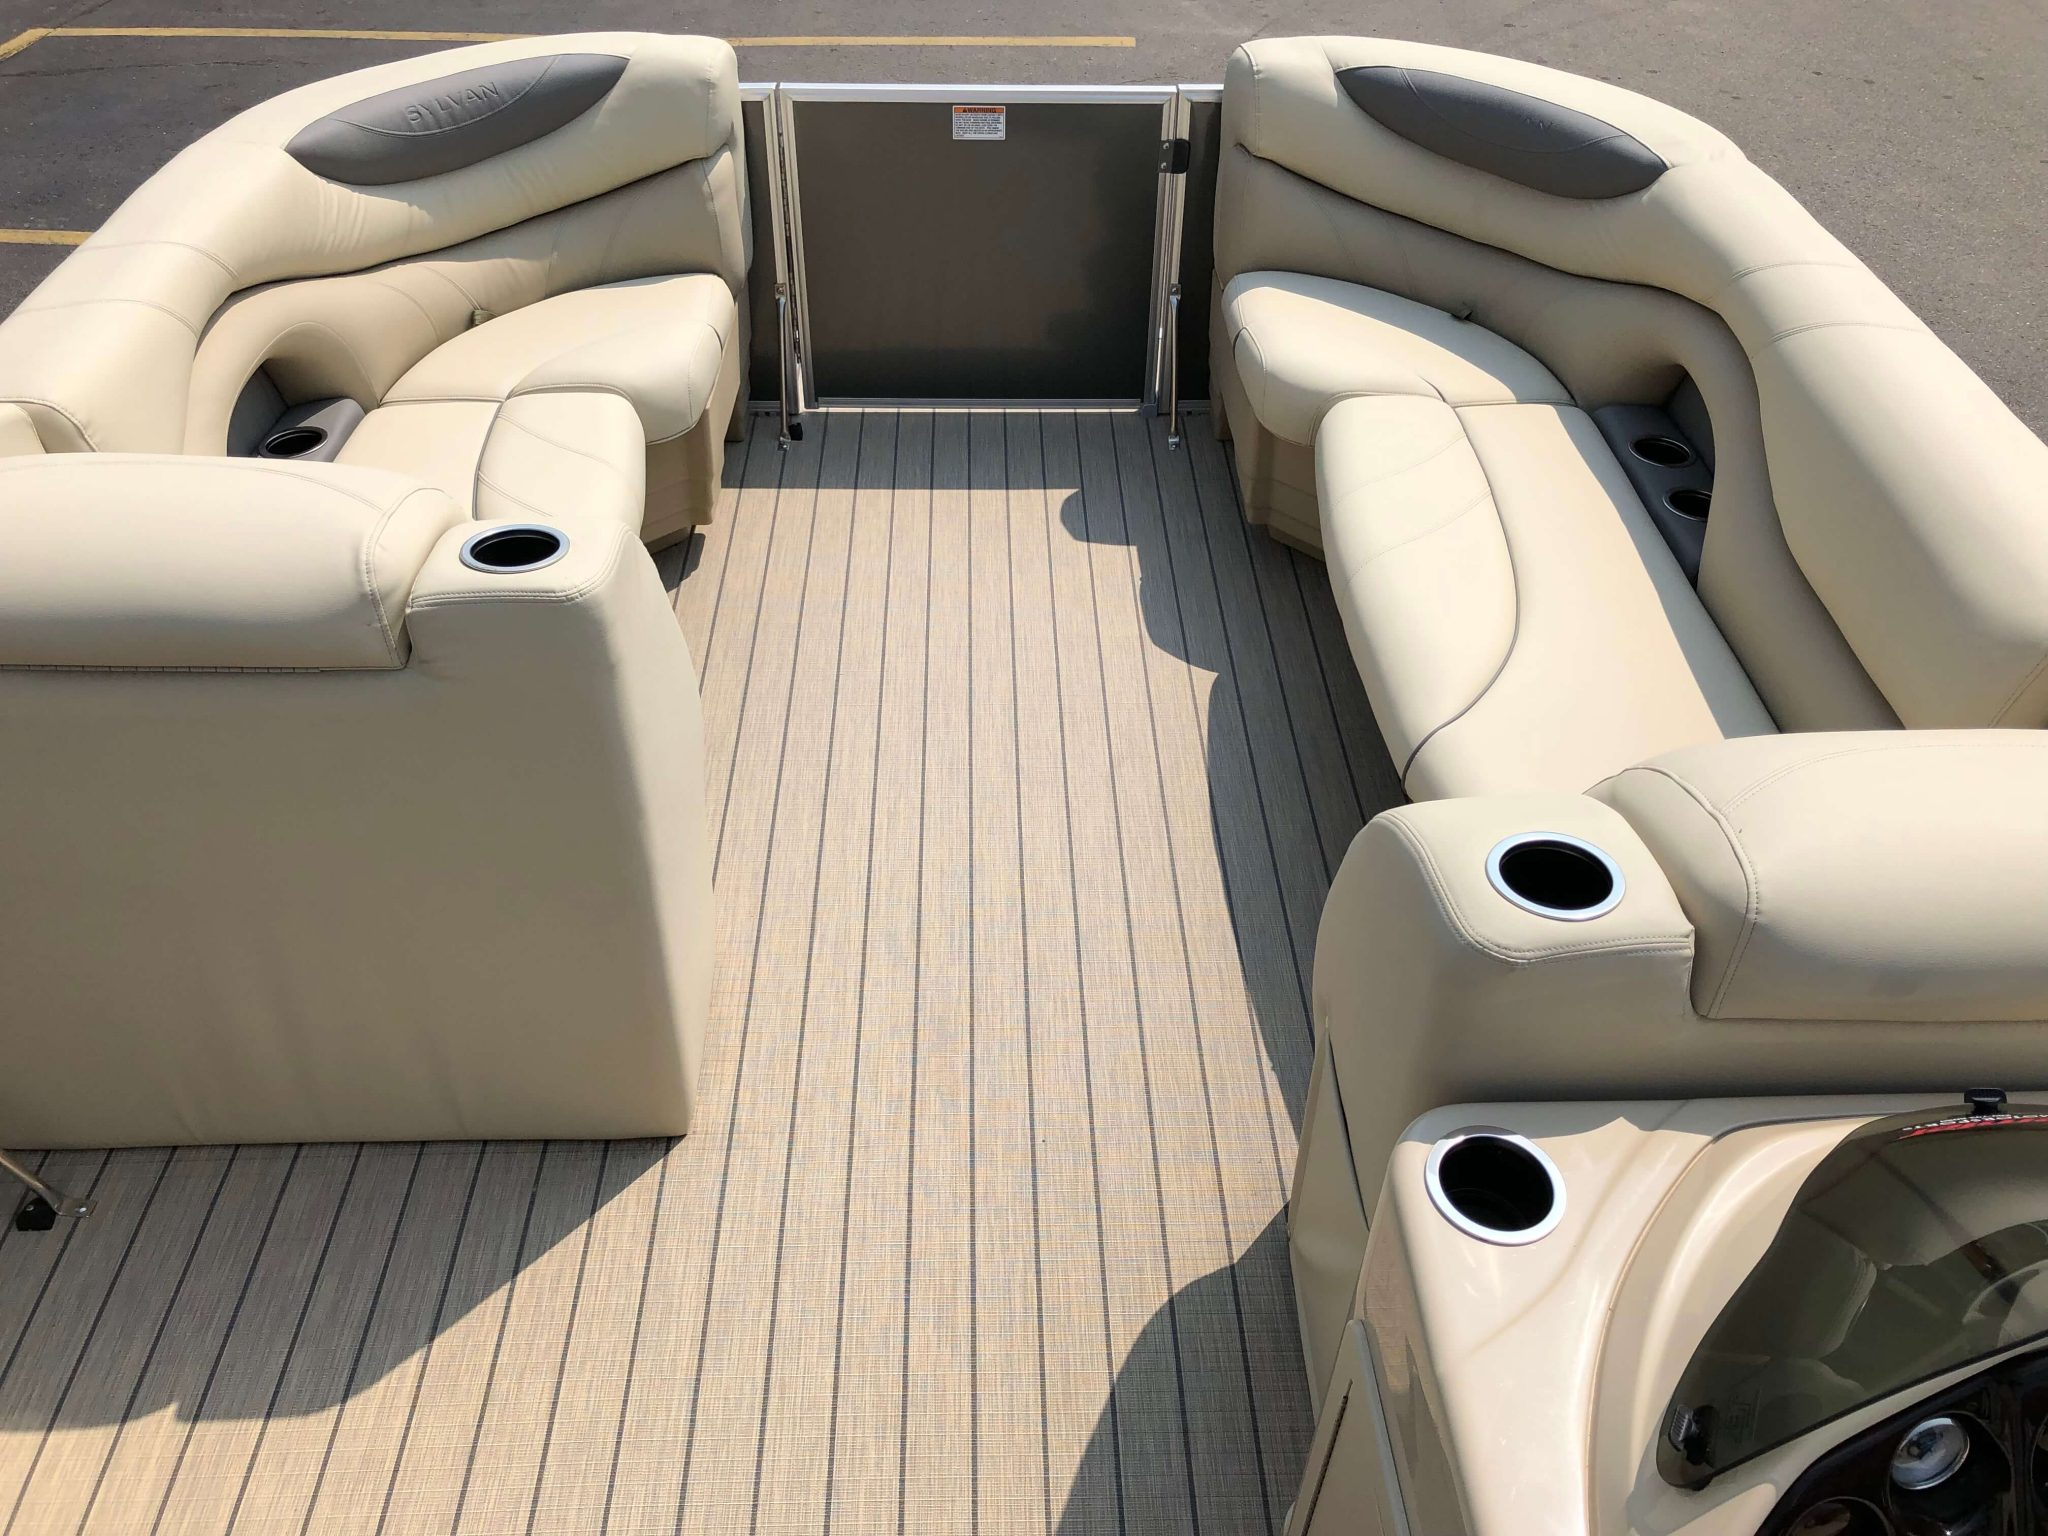 2019 Sylvan 8522 Cruise Carbon Pontoon Boat Layout 3